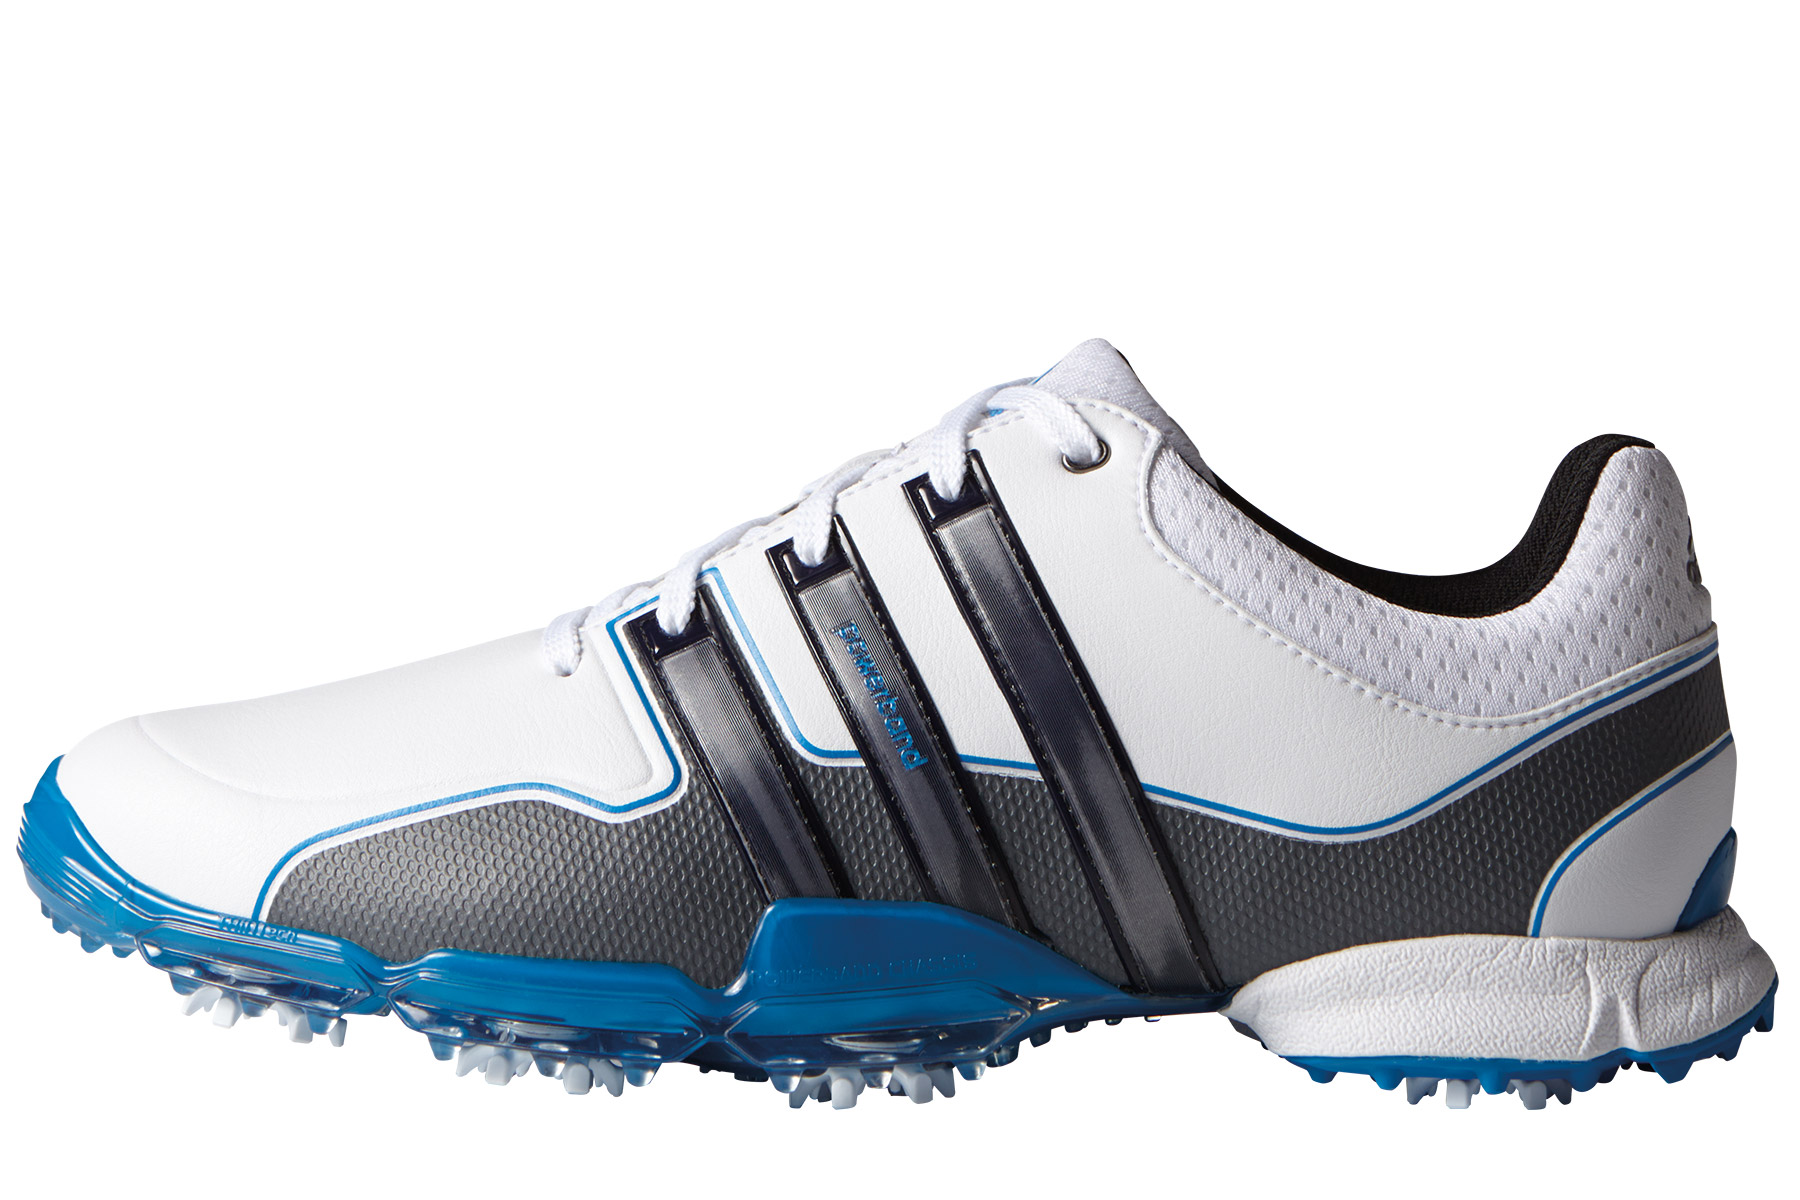 Adidas Golf Shoes Driver May